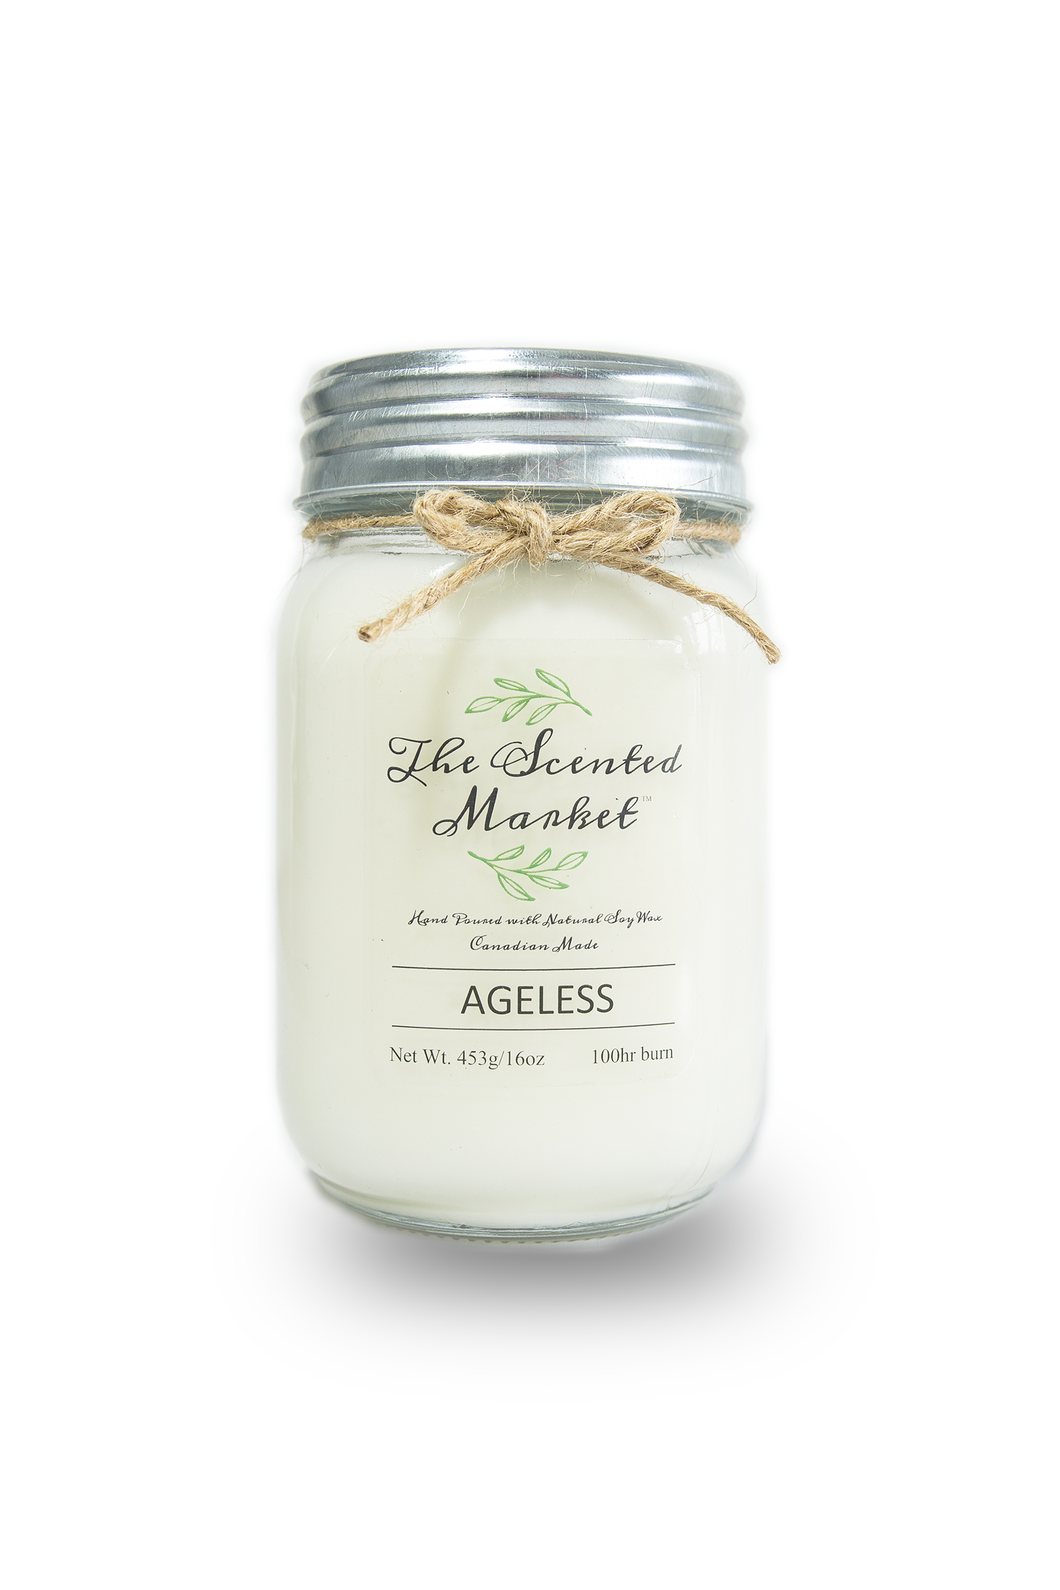 AGELESS SOY WAX CANDLE 16oz